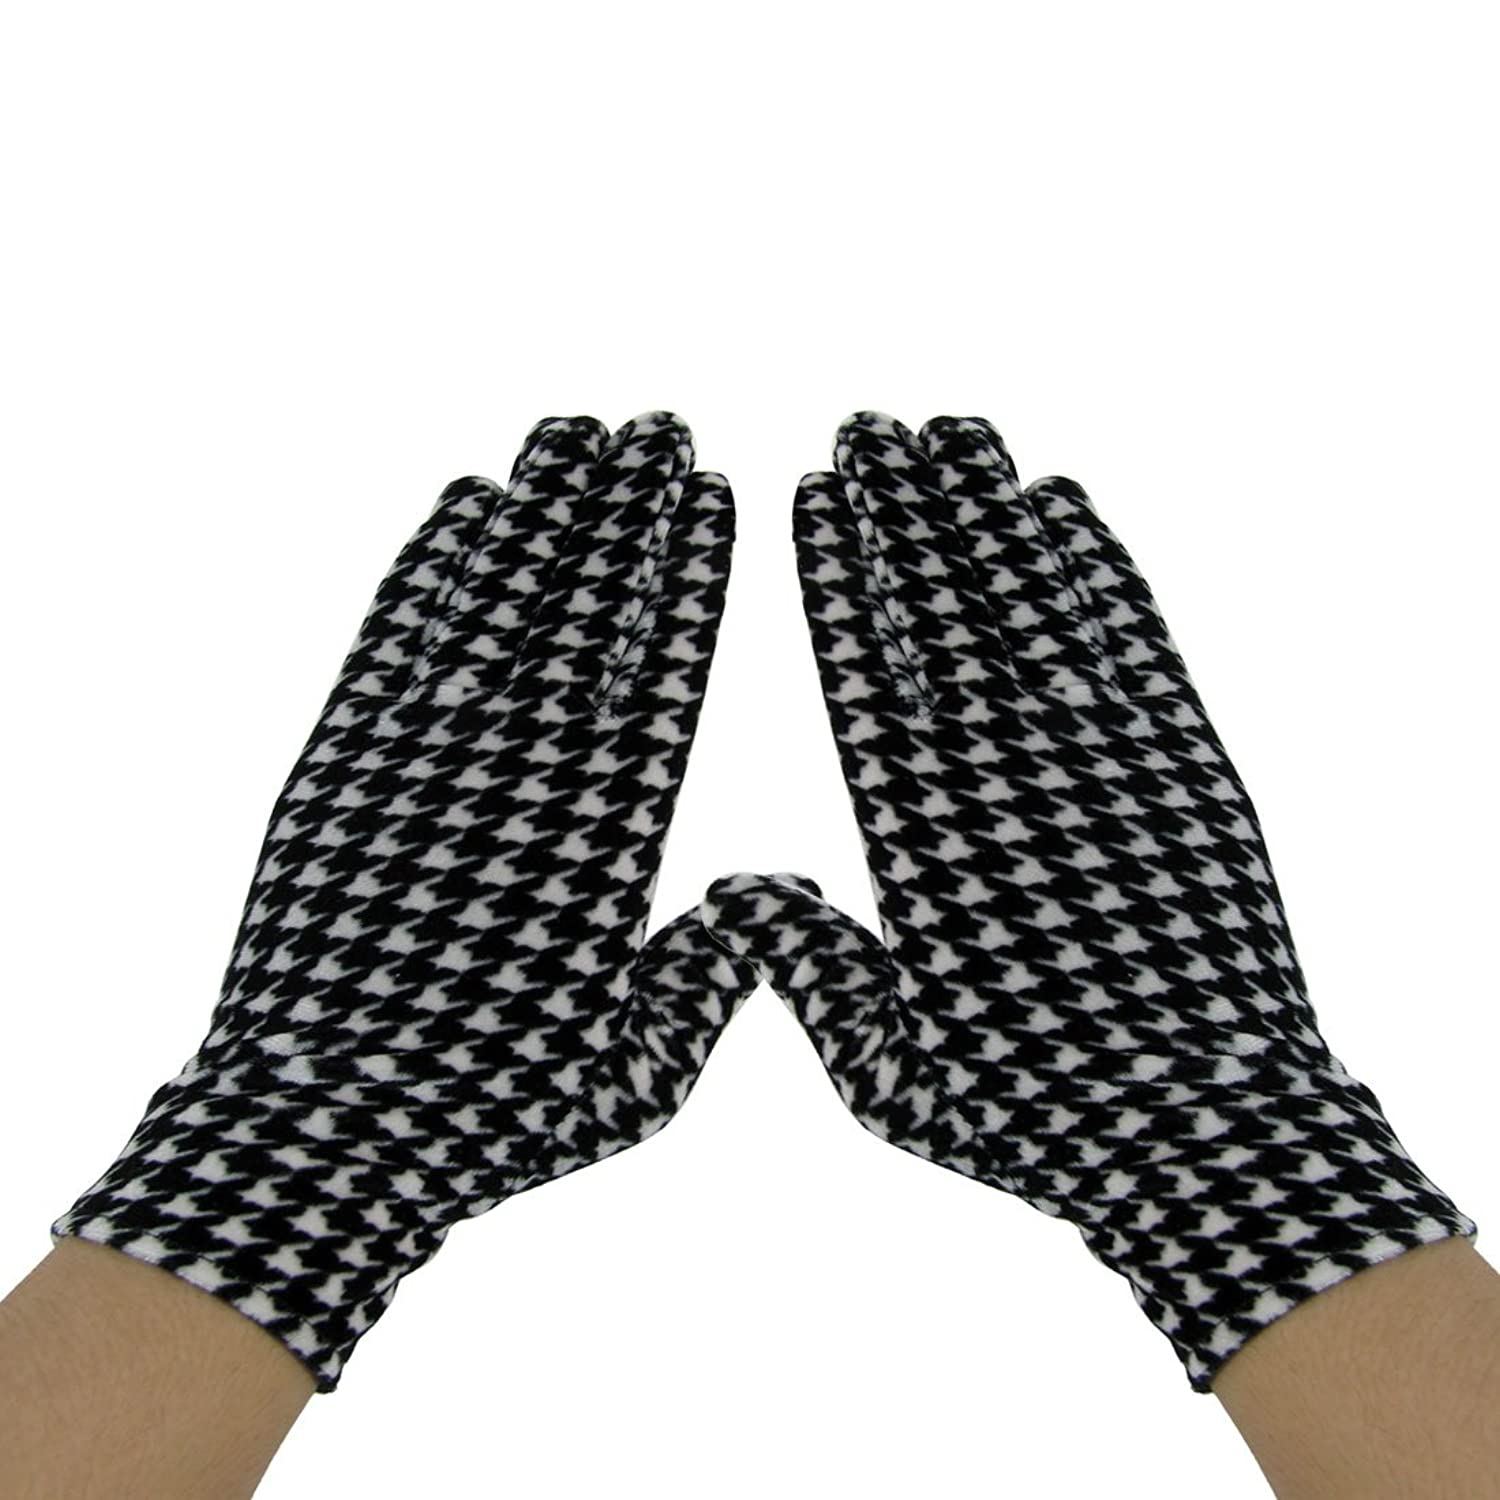 Ladies Pair Houndstooth Printed Full Fingers Warm Gloves Black White allegra k ladies cat pattern button closure upper unlined shirt dresses w belt